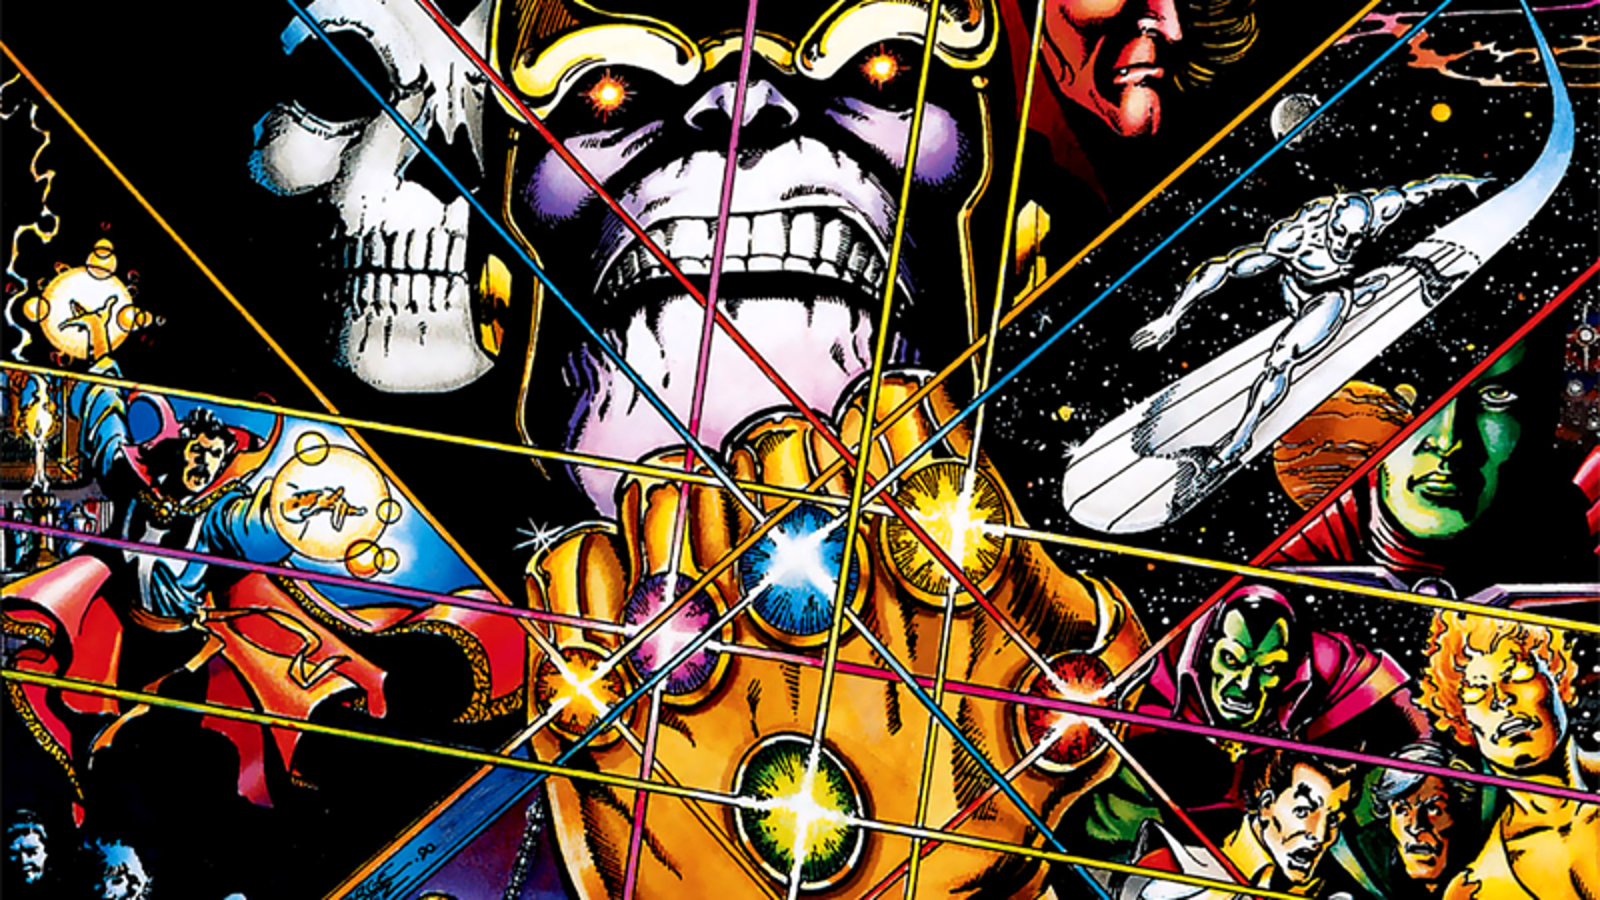 One Detail From the Infinity Gauntlet Comic That Probably Won't Make